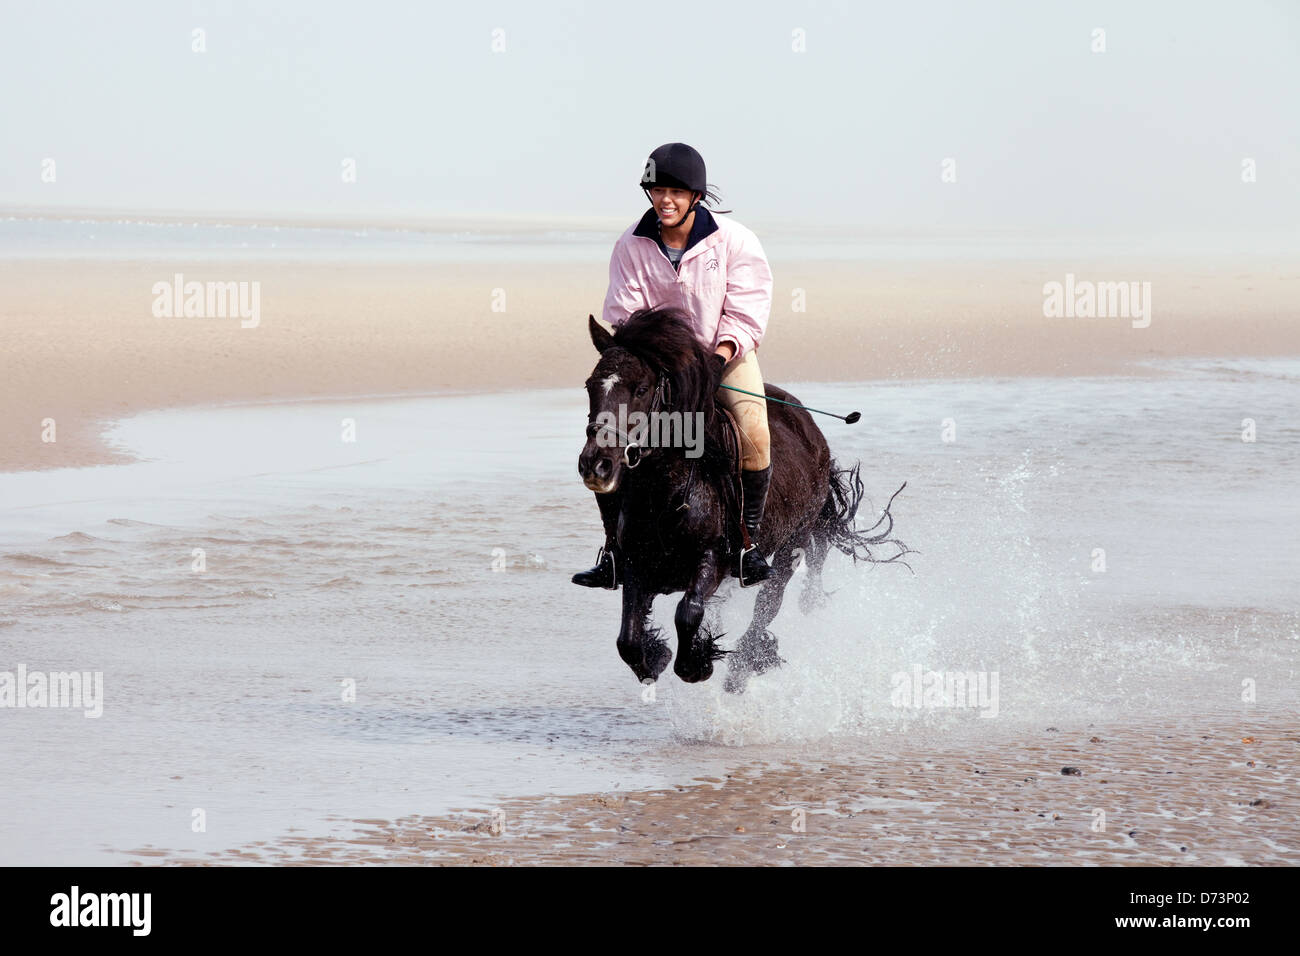 A young woman riding her pet pony on the beach, Holkham Beach, Norfolk UK Stock Photo